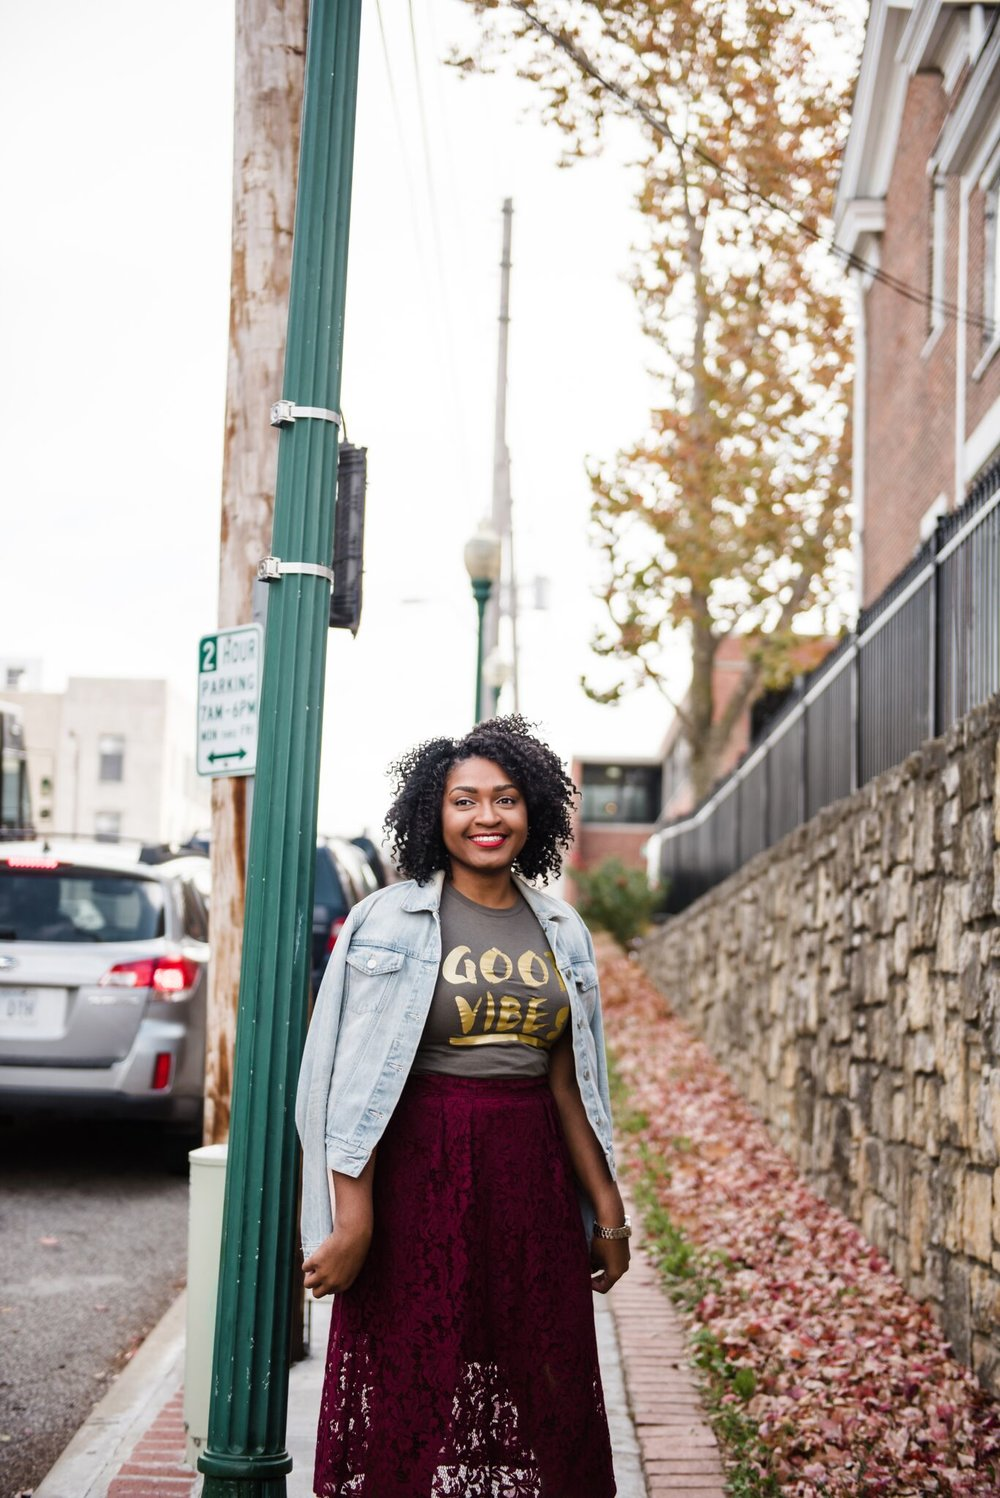 How to Style an Olive Good Vibes Tee by jasmine diane